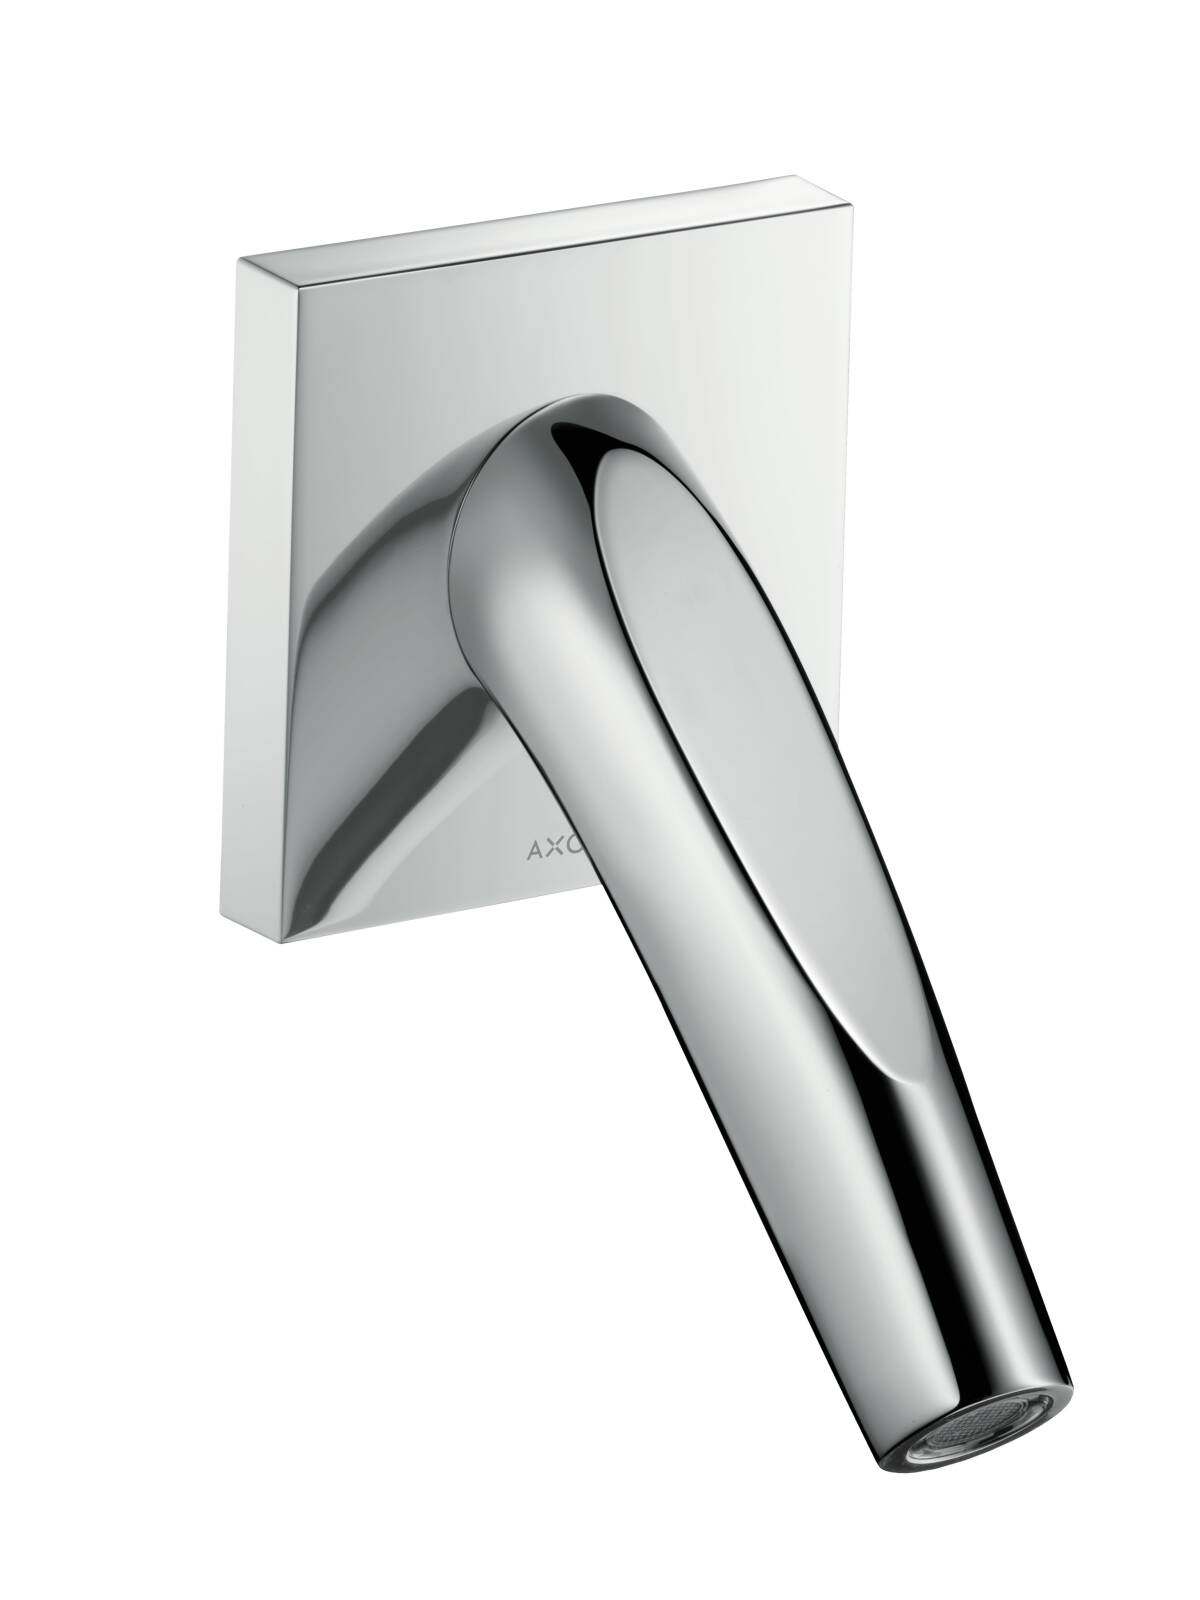 Bath spout, chrome, 12417000